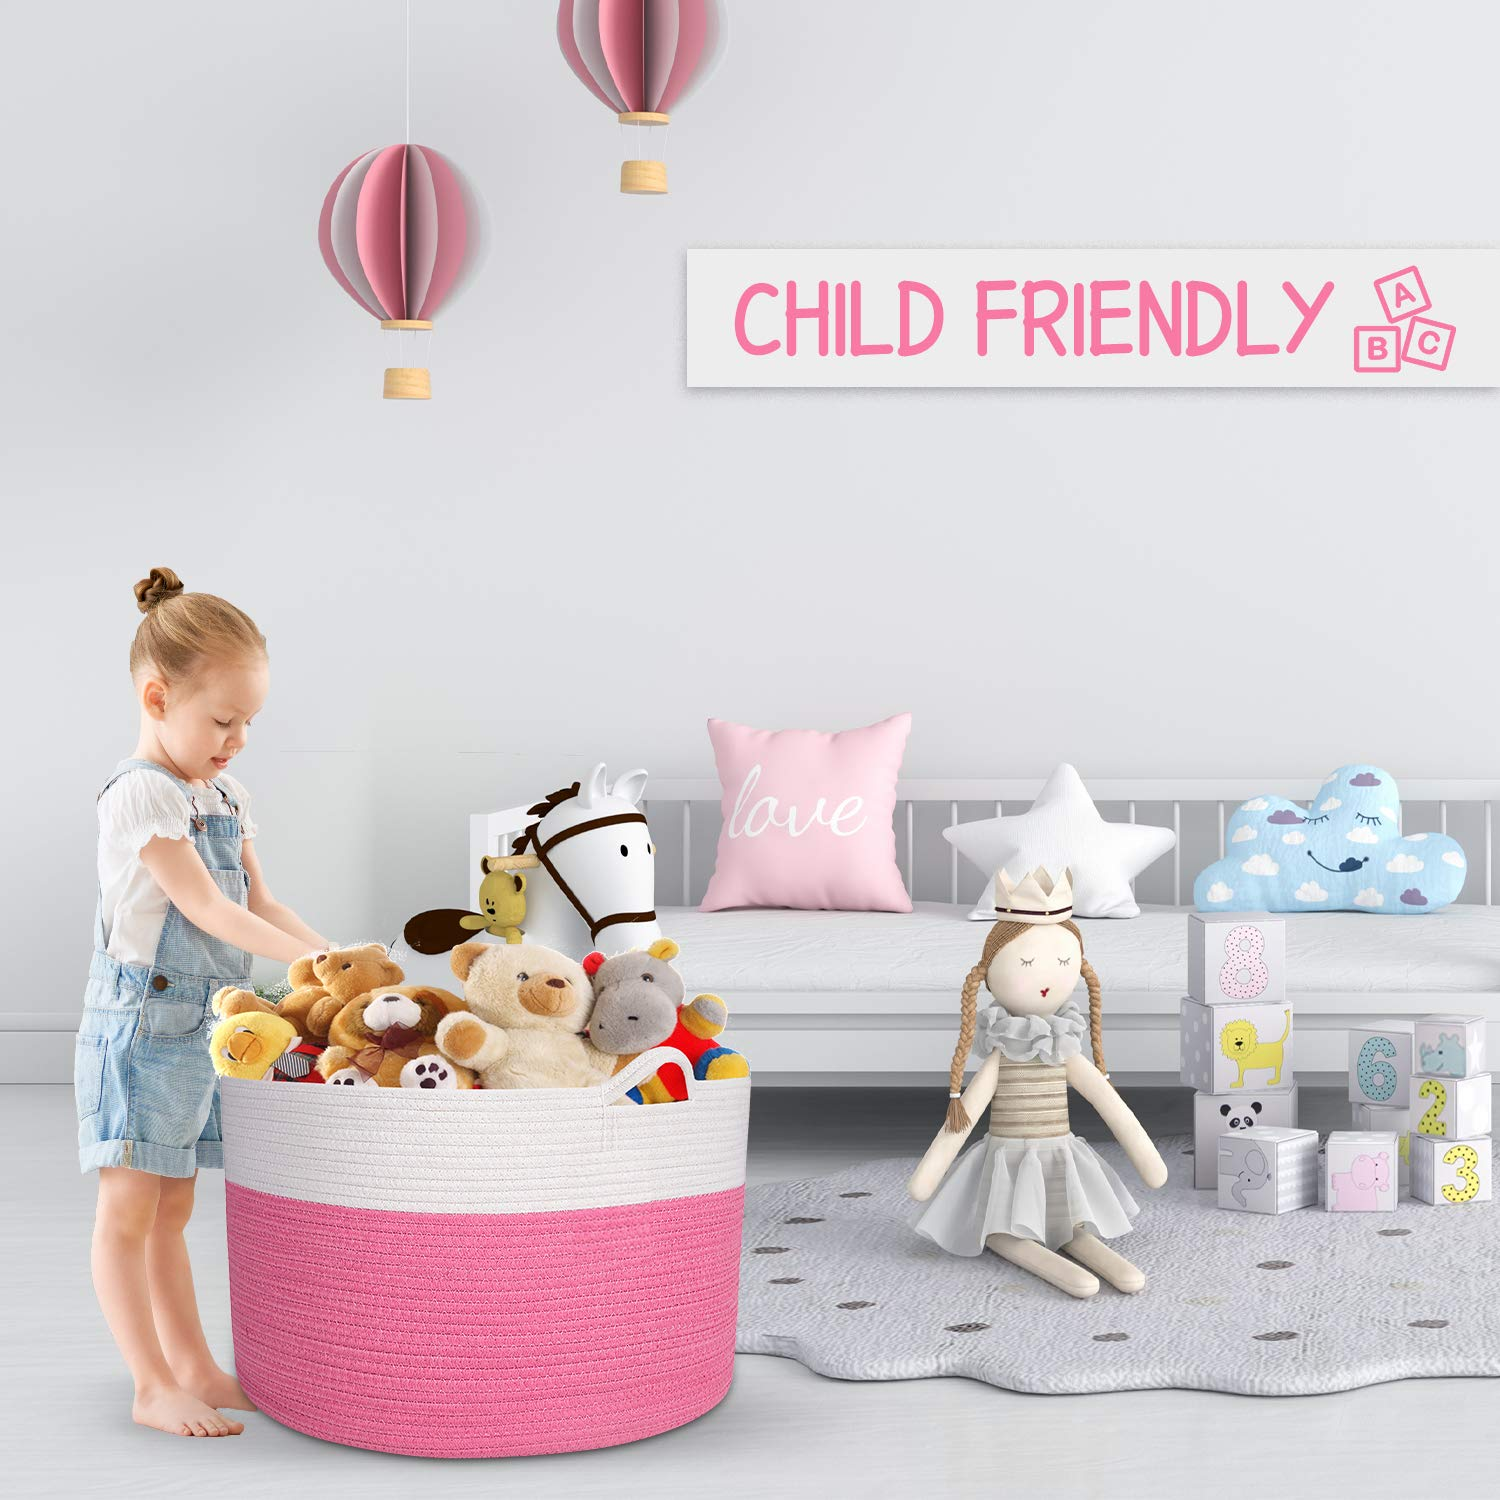 Round Toy Basket with Handles Throws,/Toys Graphite. and Pillows 100/% Natural Cotton HOMECLASS6 XXL/Cotton Rope Blanket Basket Living Room Woven Storage Basket for Blankets 20 x 20 x 13.3 inch